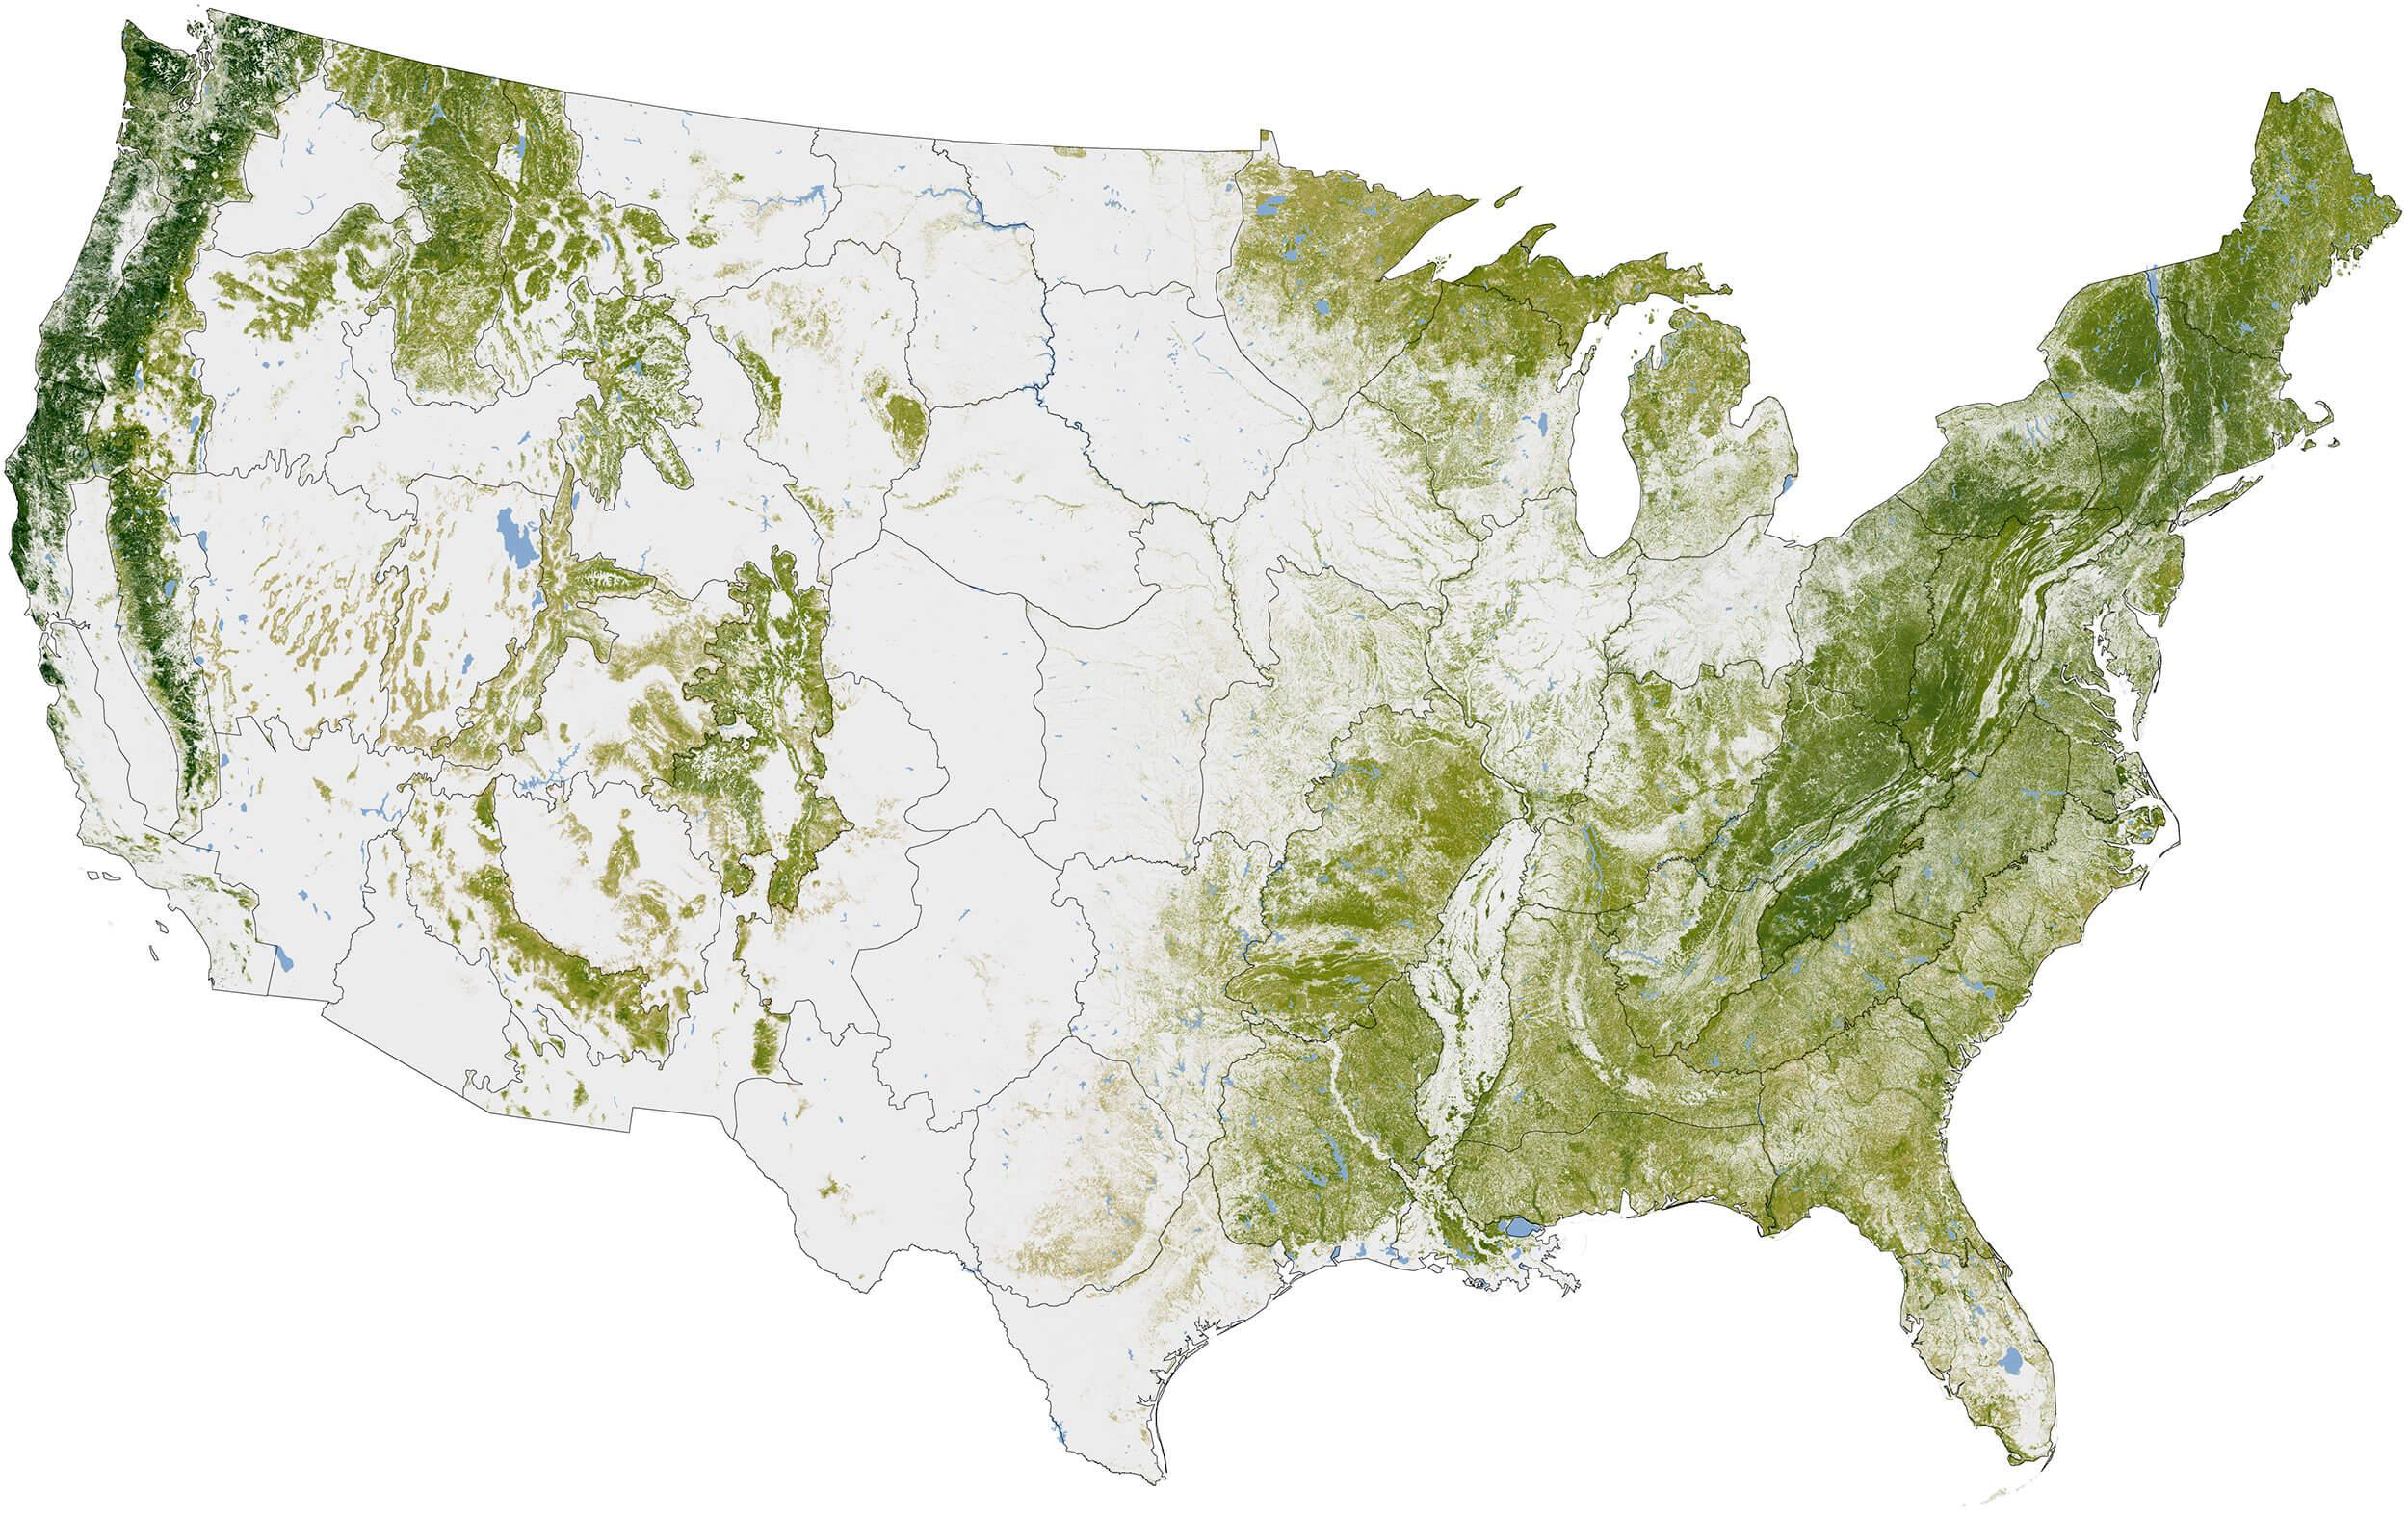 Forests cover about 30% of the planet's land area, and as much as 45% of the carbon stored on land is tied up in forests. The National Biomass and Carbon Dataset is the largest high-resolution map of forest biomass yet assembled. Map by Robert Simmon based on 2011 data from Woods Hole Research Center. Source: NASA How the Paper Industry is Offsetting Climate Change